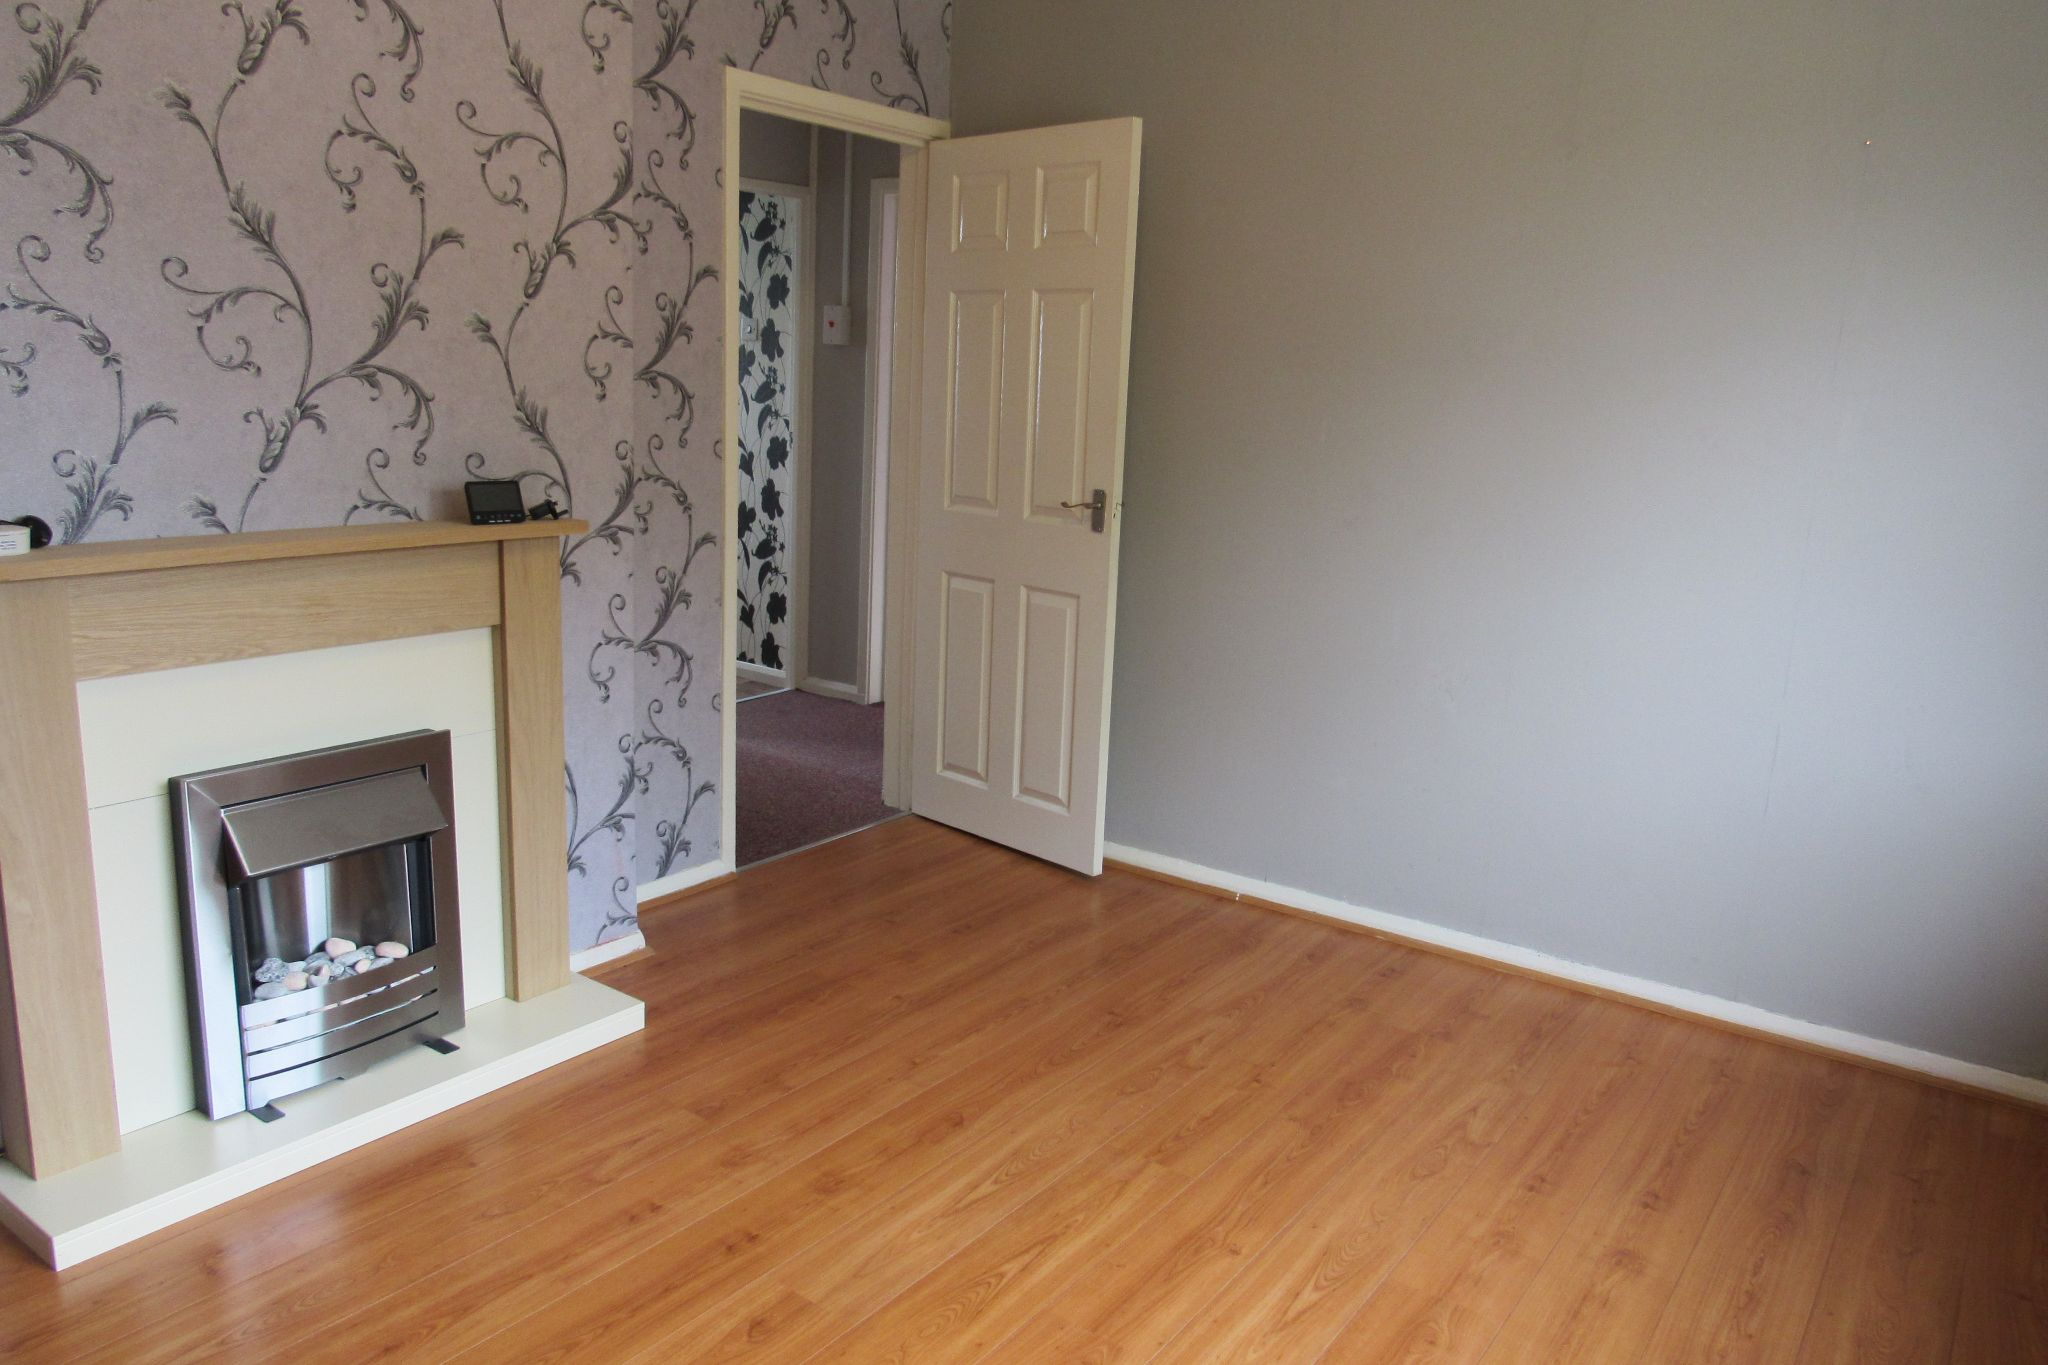 2 bedroom apartment flat/apartment SSTC in Manchester - Photograph 9.